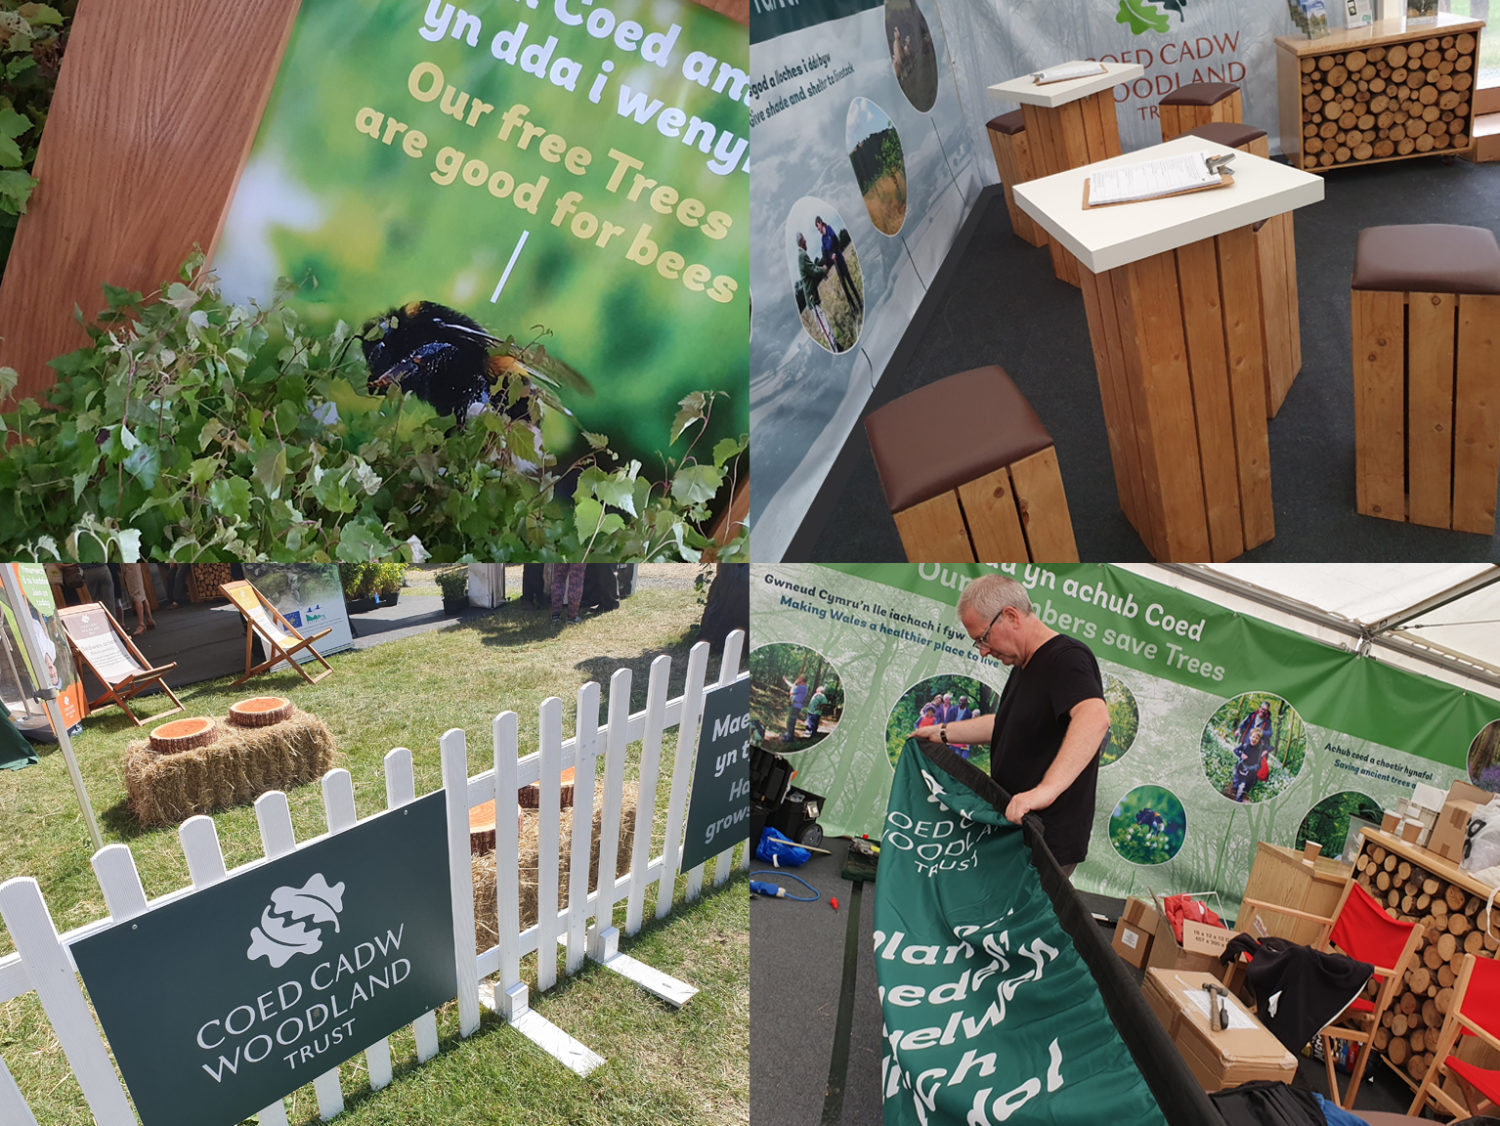 Woodland Trust at the Royal Welsh Show